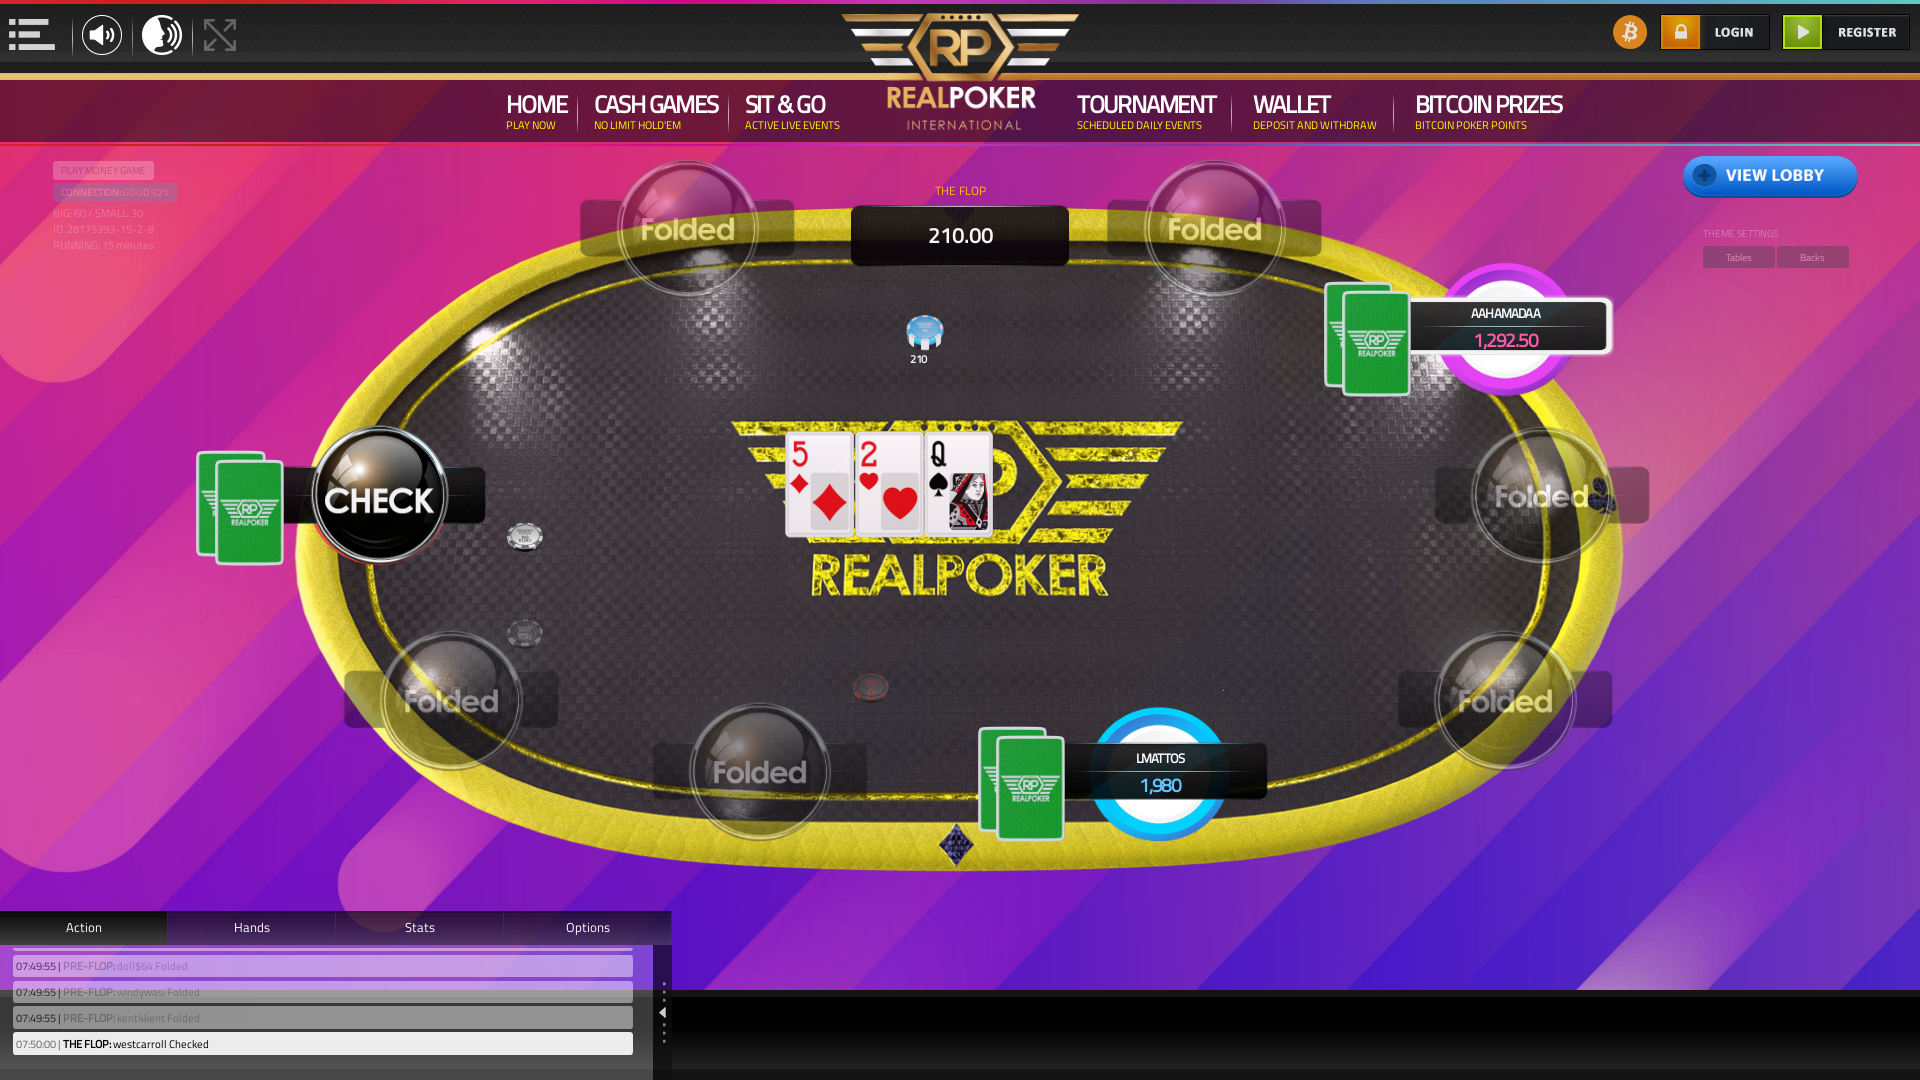 Kenya Casino Bitcoin Poker from 13th October